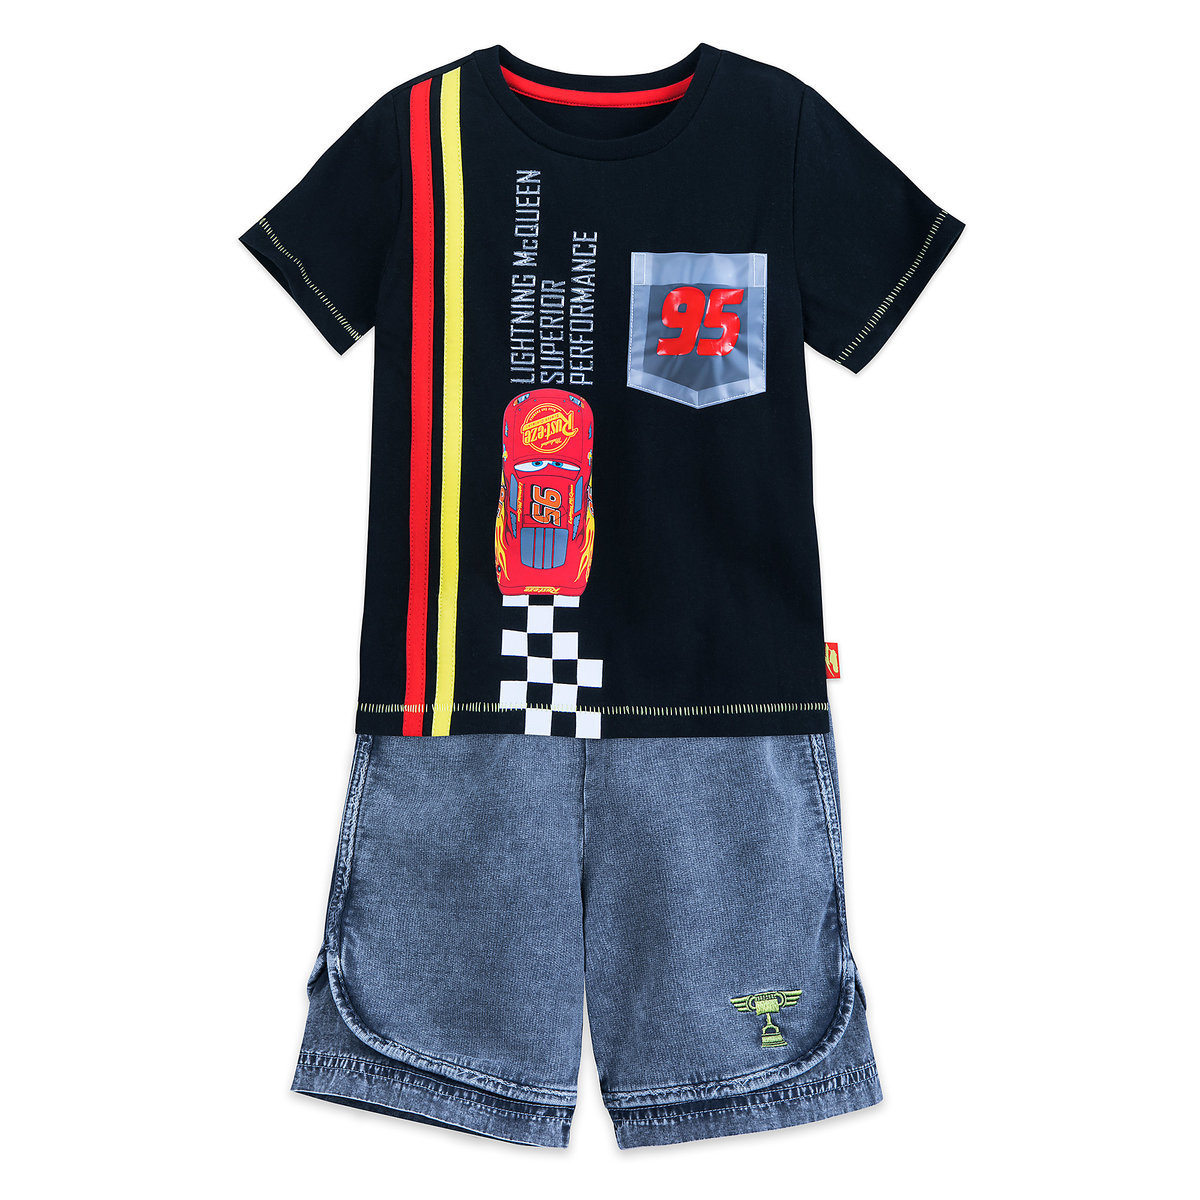 a2af215c255fb Product Image of Lightning McQueen Shirt and Shorts Set for Boys # 1